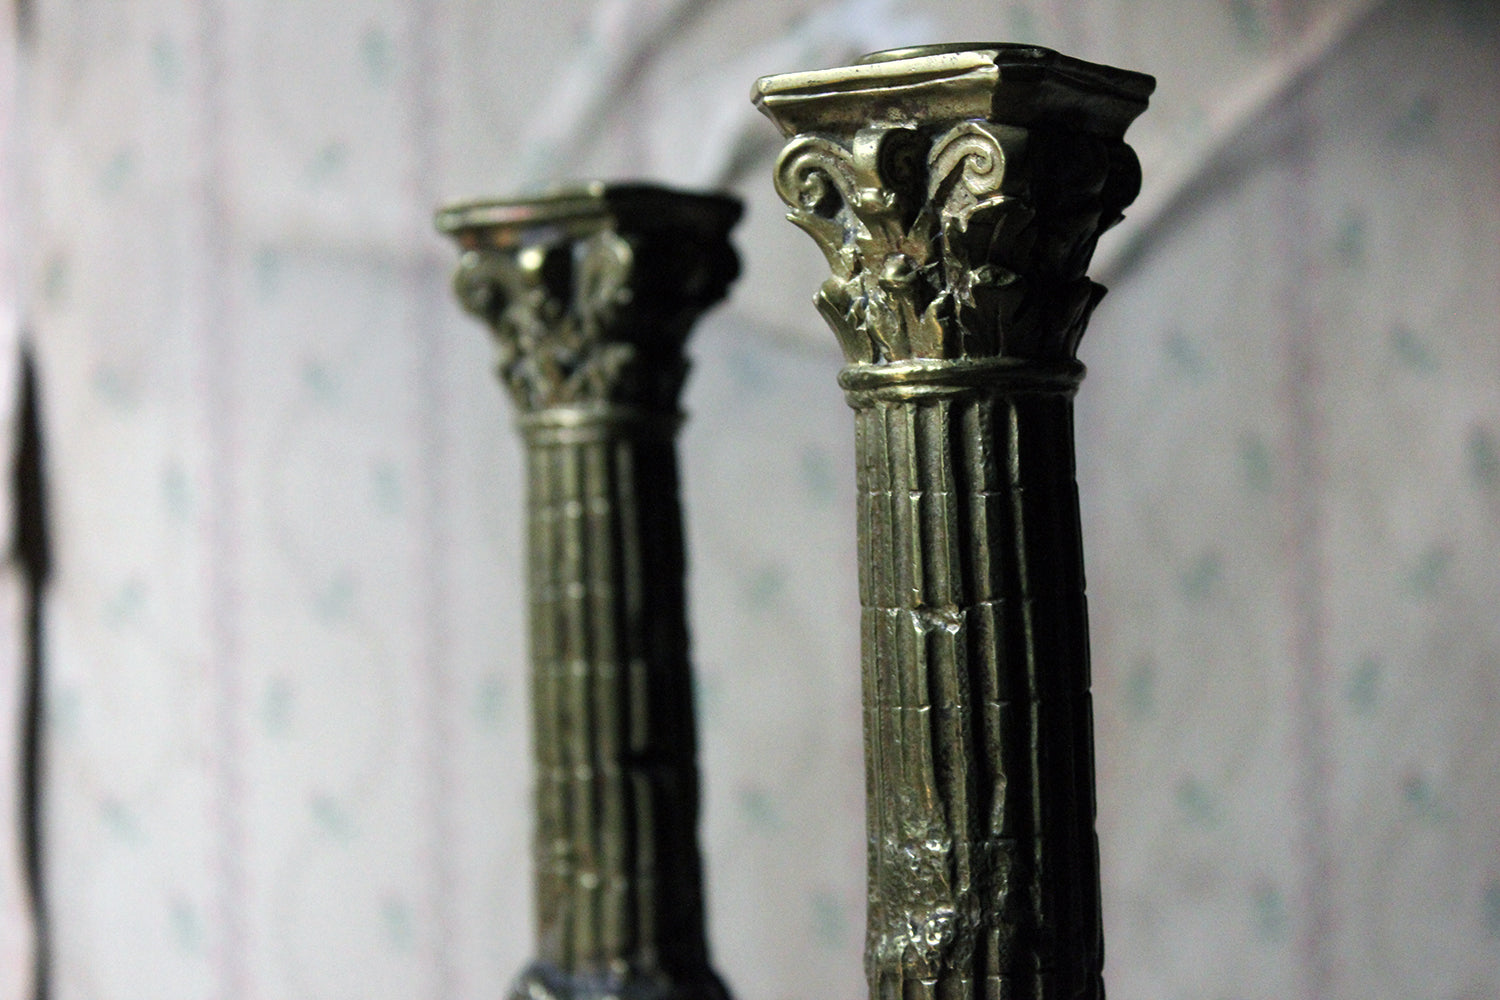 A Good Pair of Large 19thC Ormolu Candlesticks Modelled as Corinthian Capital Ruins c.1890